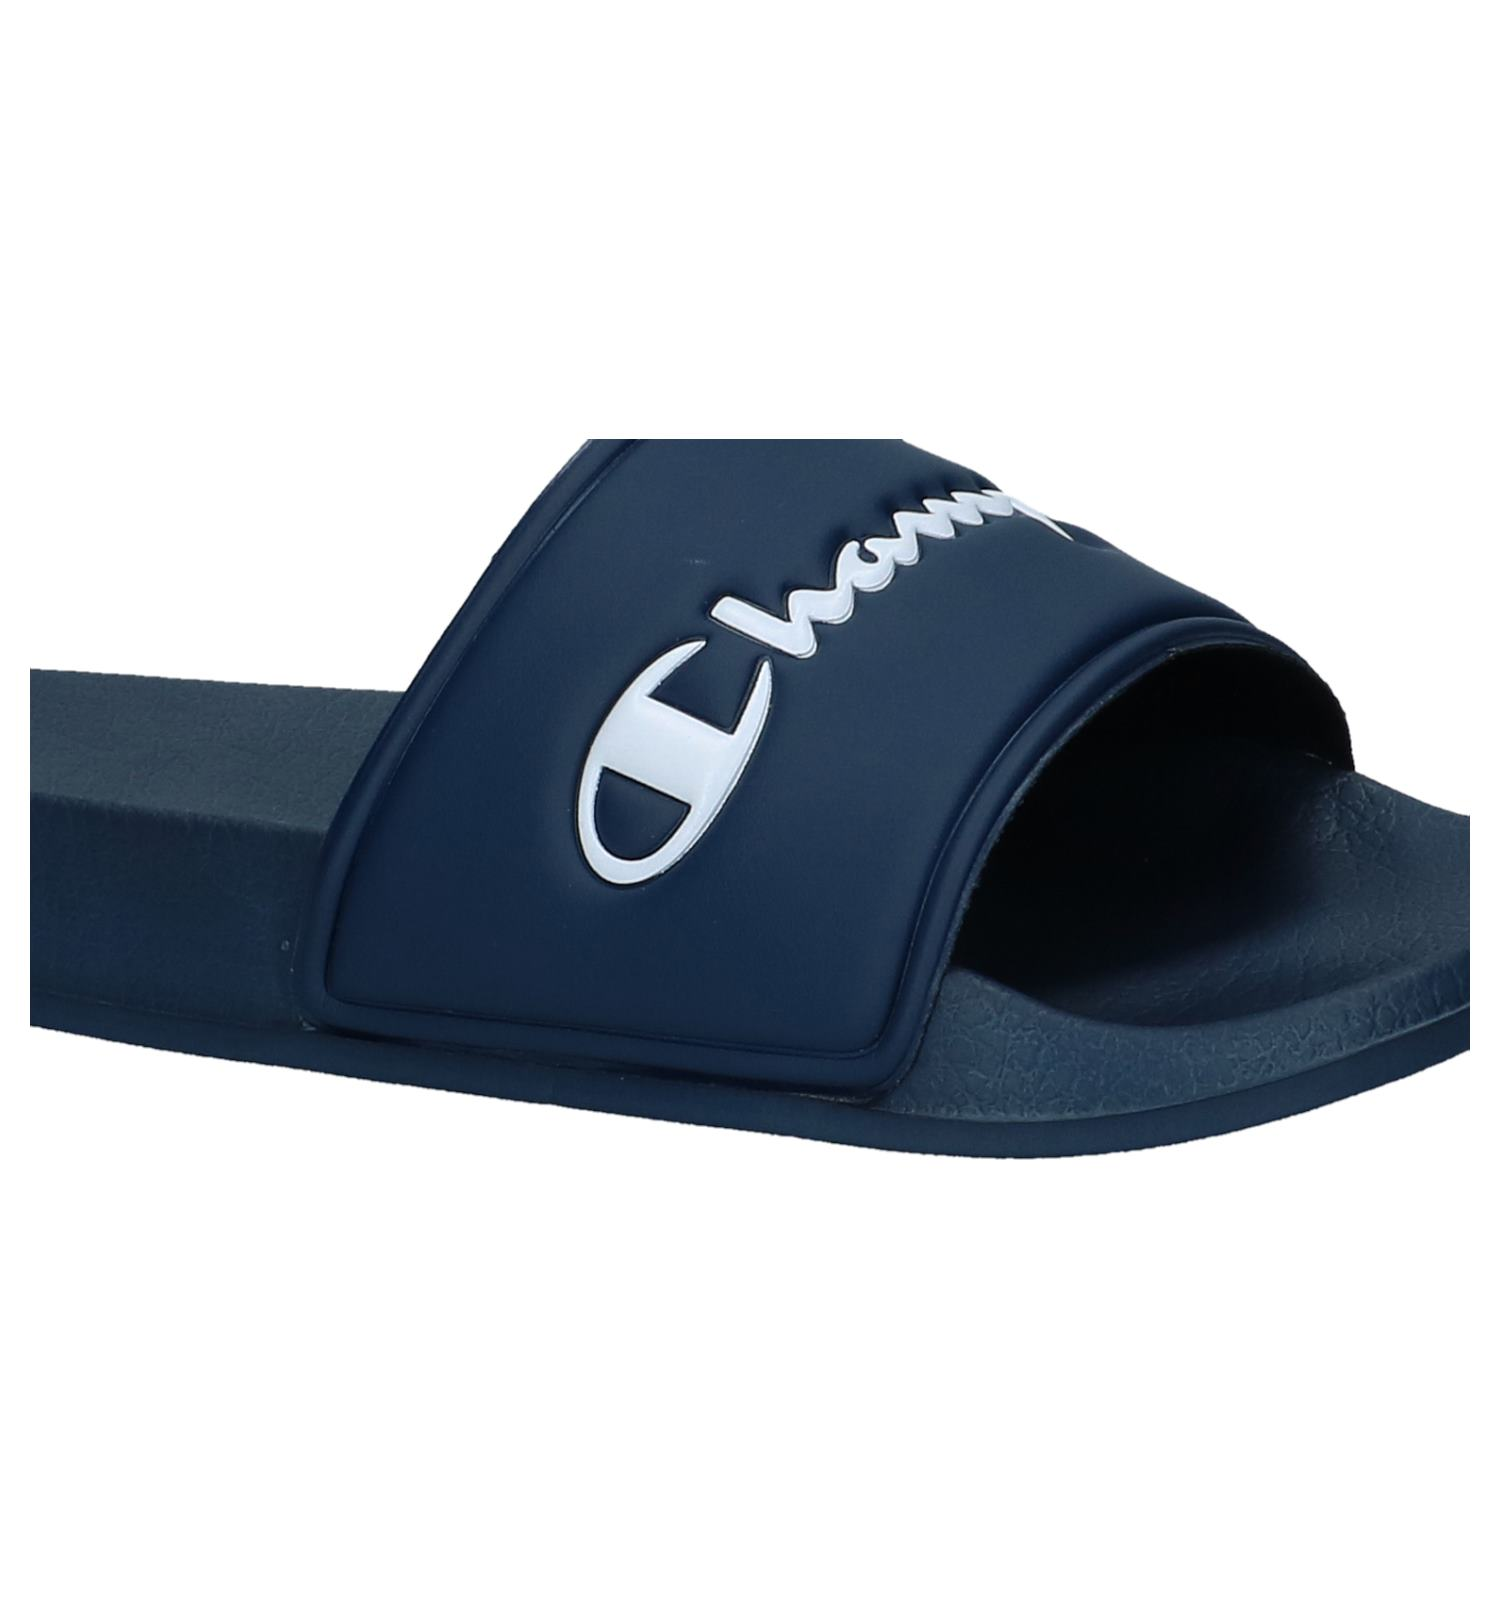 dd26be2861421 Donker Blauwe Slippers Champion Florida